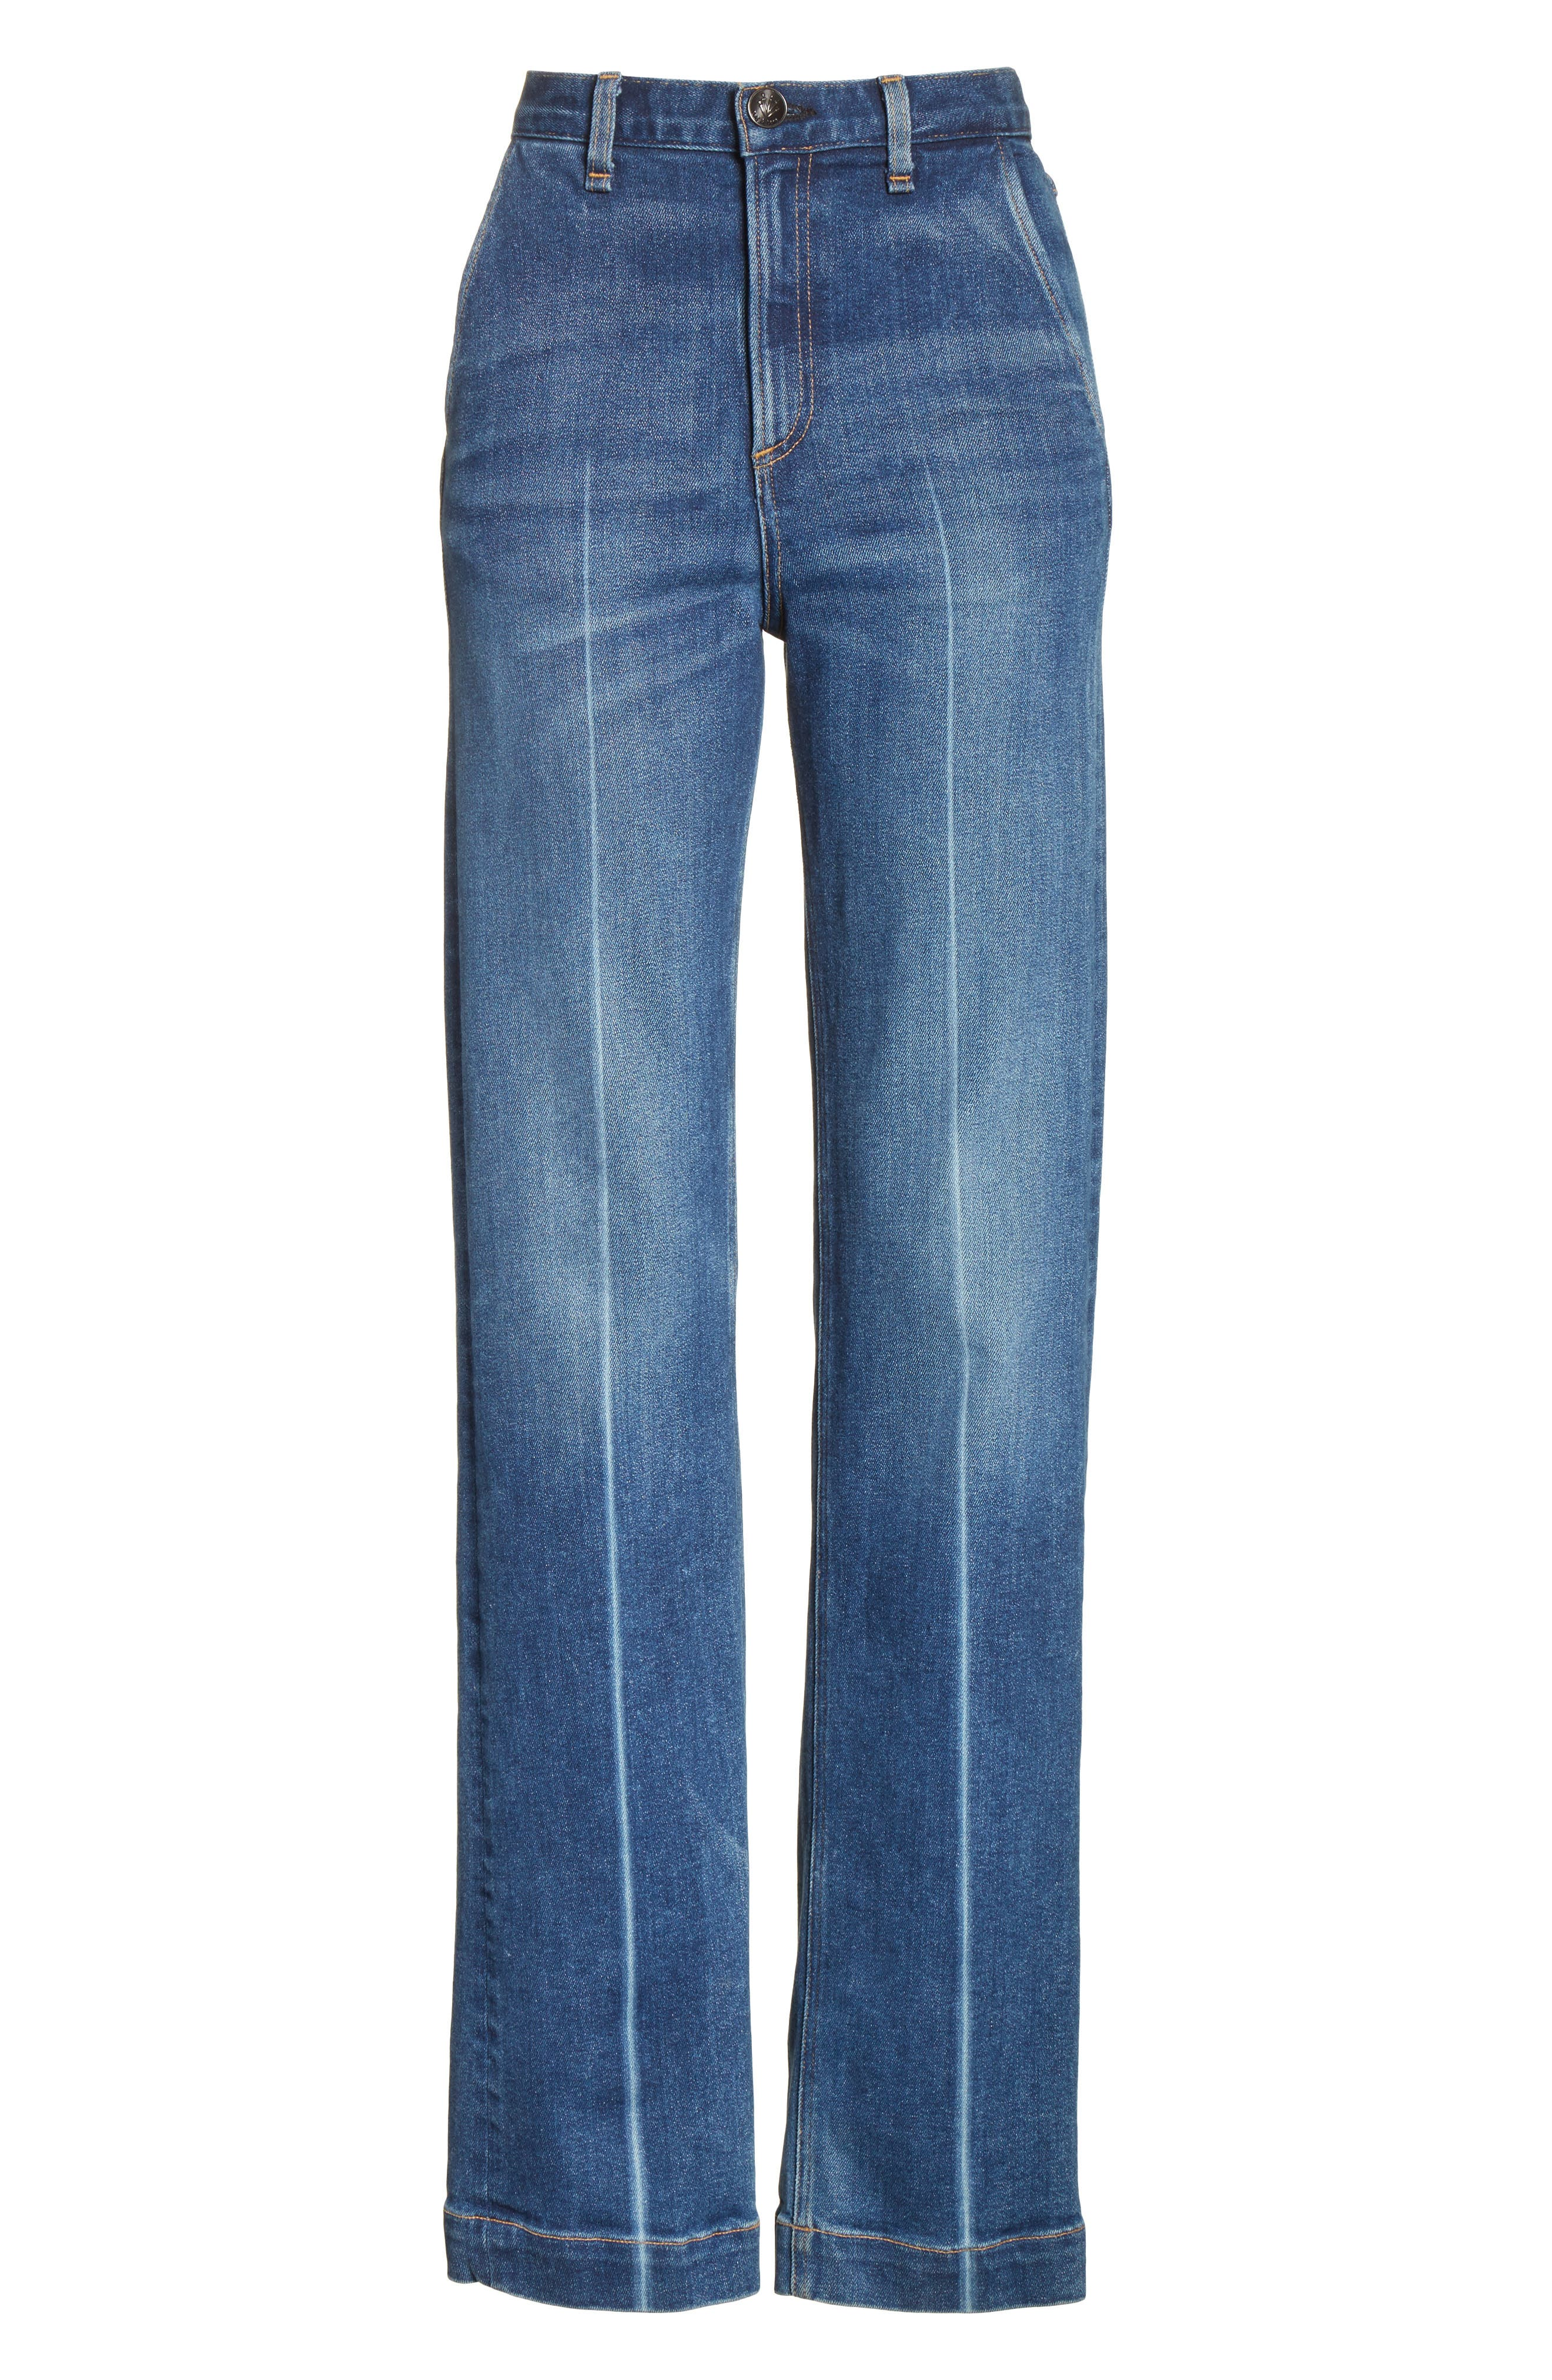 Justine High Waist Trouser Jeans,                             Alternate thumbnail 6, color,                             Highwater